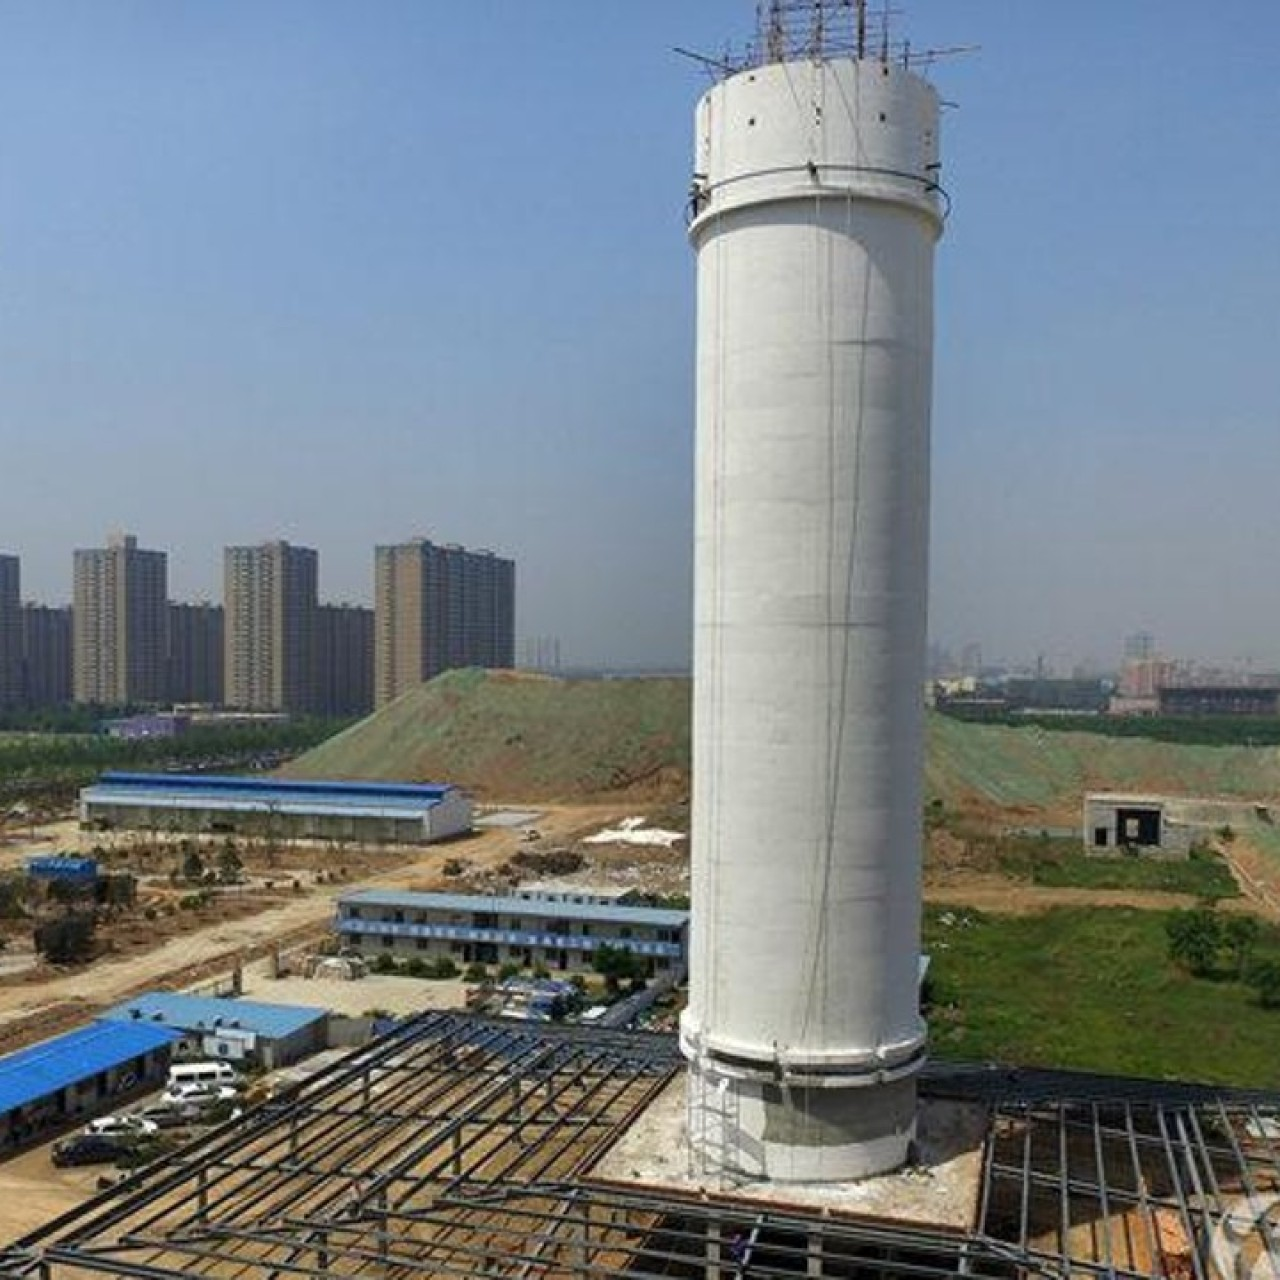 China builds 'world's biggest air purifier' (and it seems to